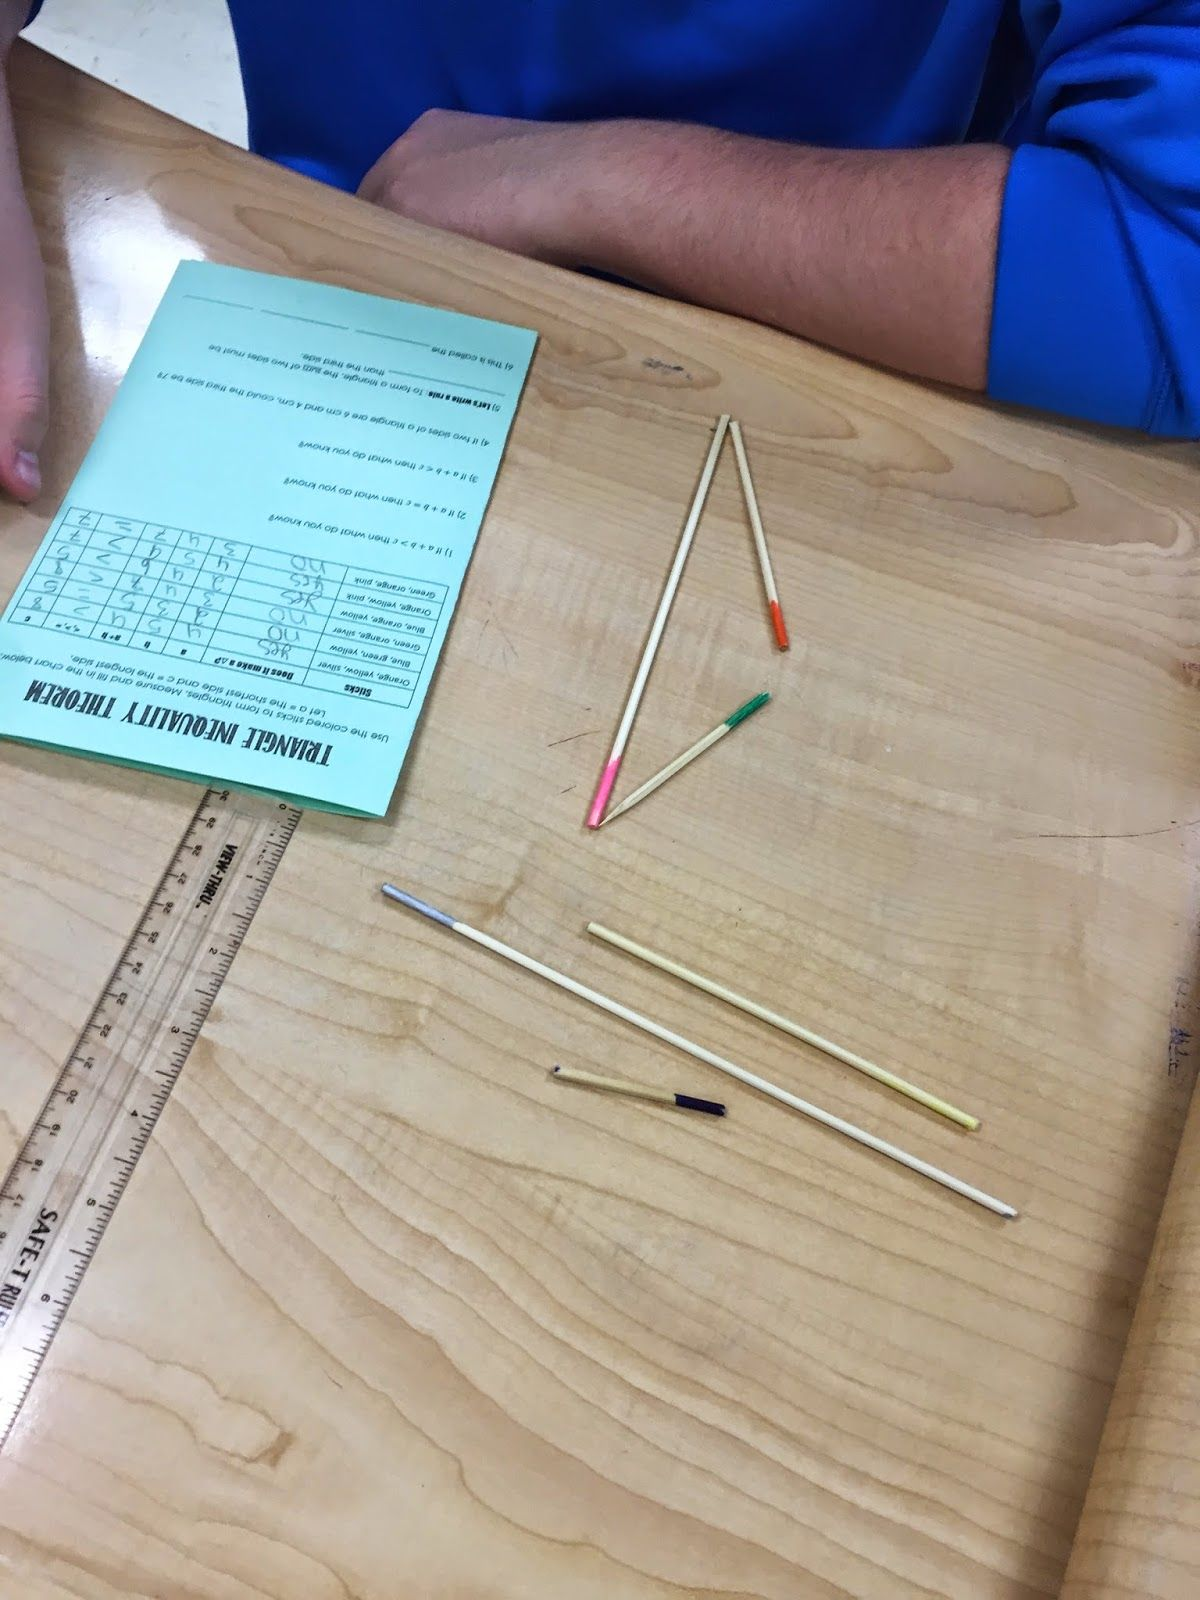 misscalcul8: Triangle Inequality Skewers   Education   Pinterest